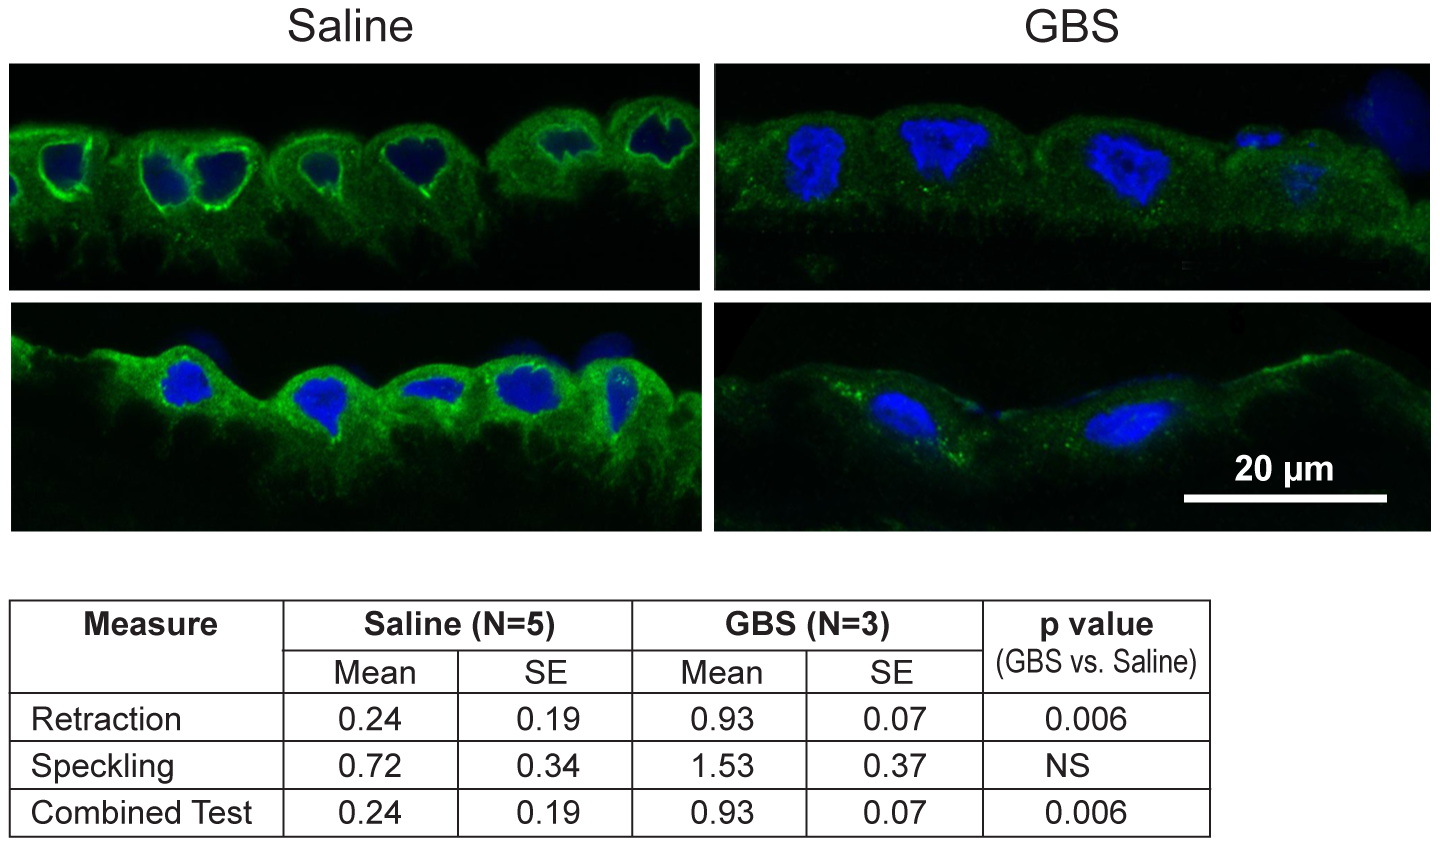 CK-6 immunostained samples of chorioamnion were imaged by confocal microscopy with representative images of saline controls and GBS cases.